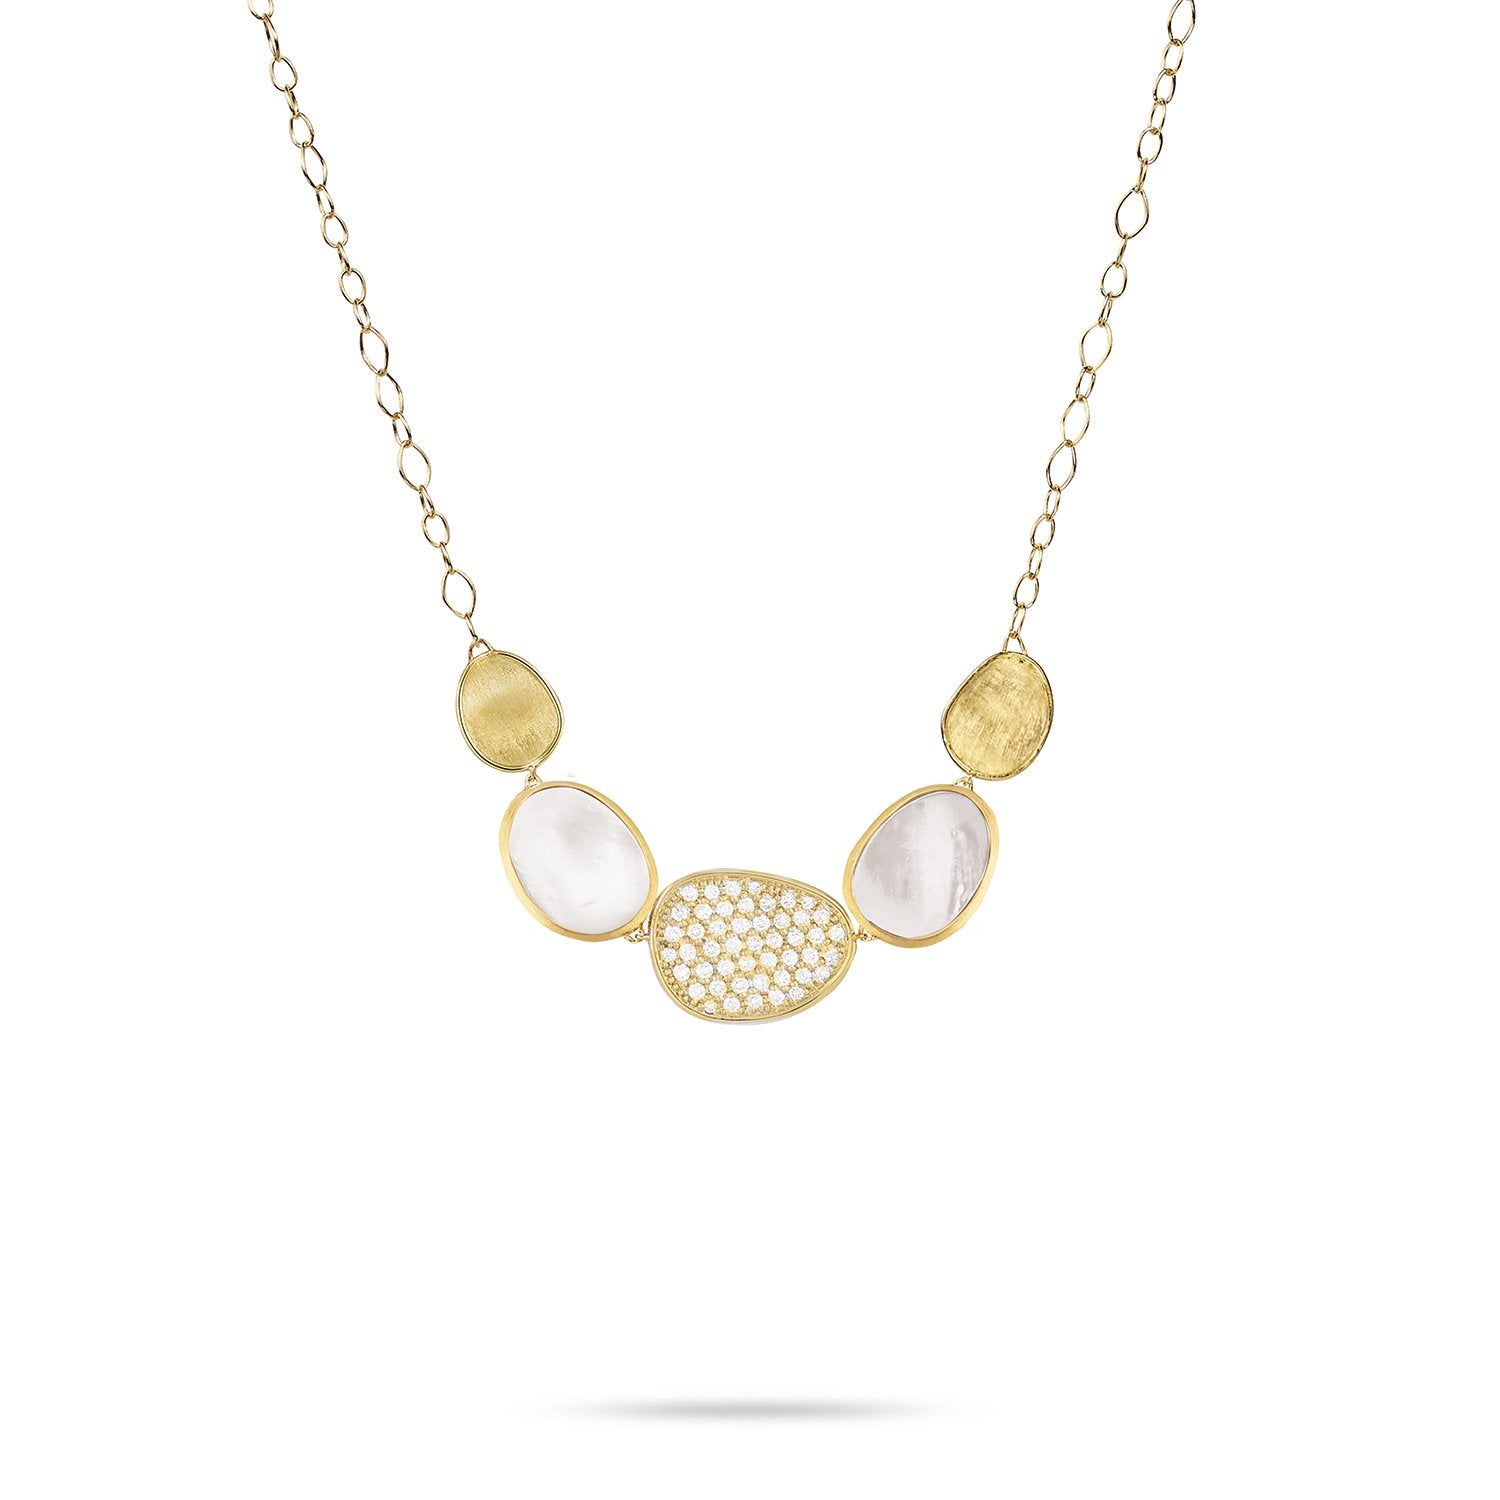 Lunaria 18K Yellow Gold and Diamond White Mother of Pearl Graduated Necklace